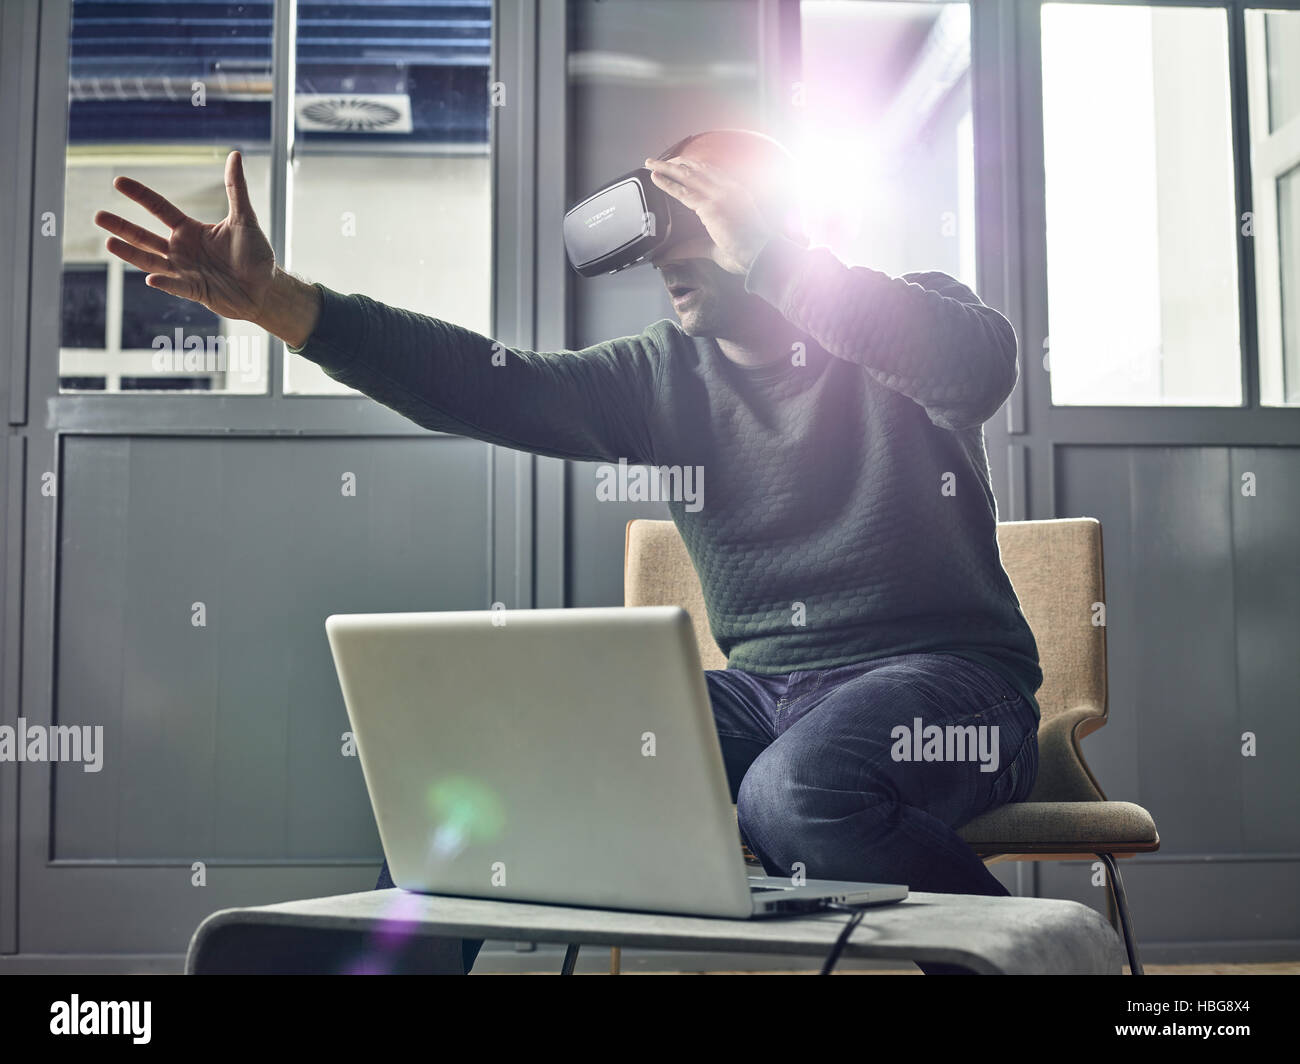 Man with VR goggles, virtual reality glasses - Stock Image